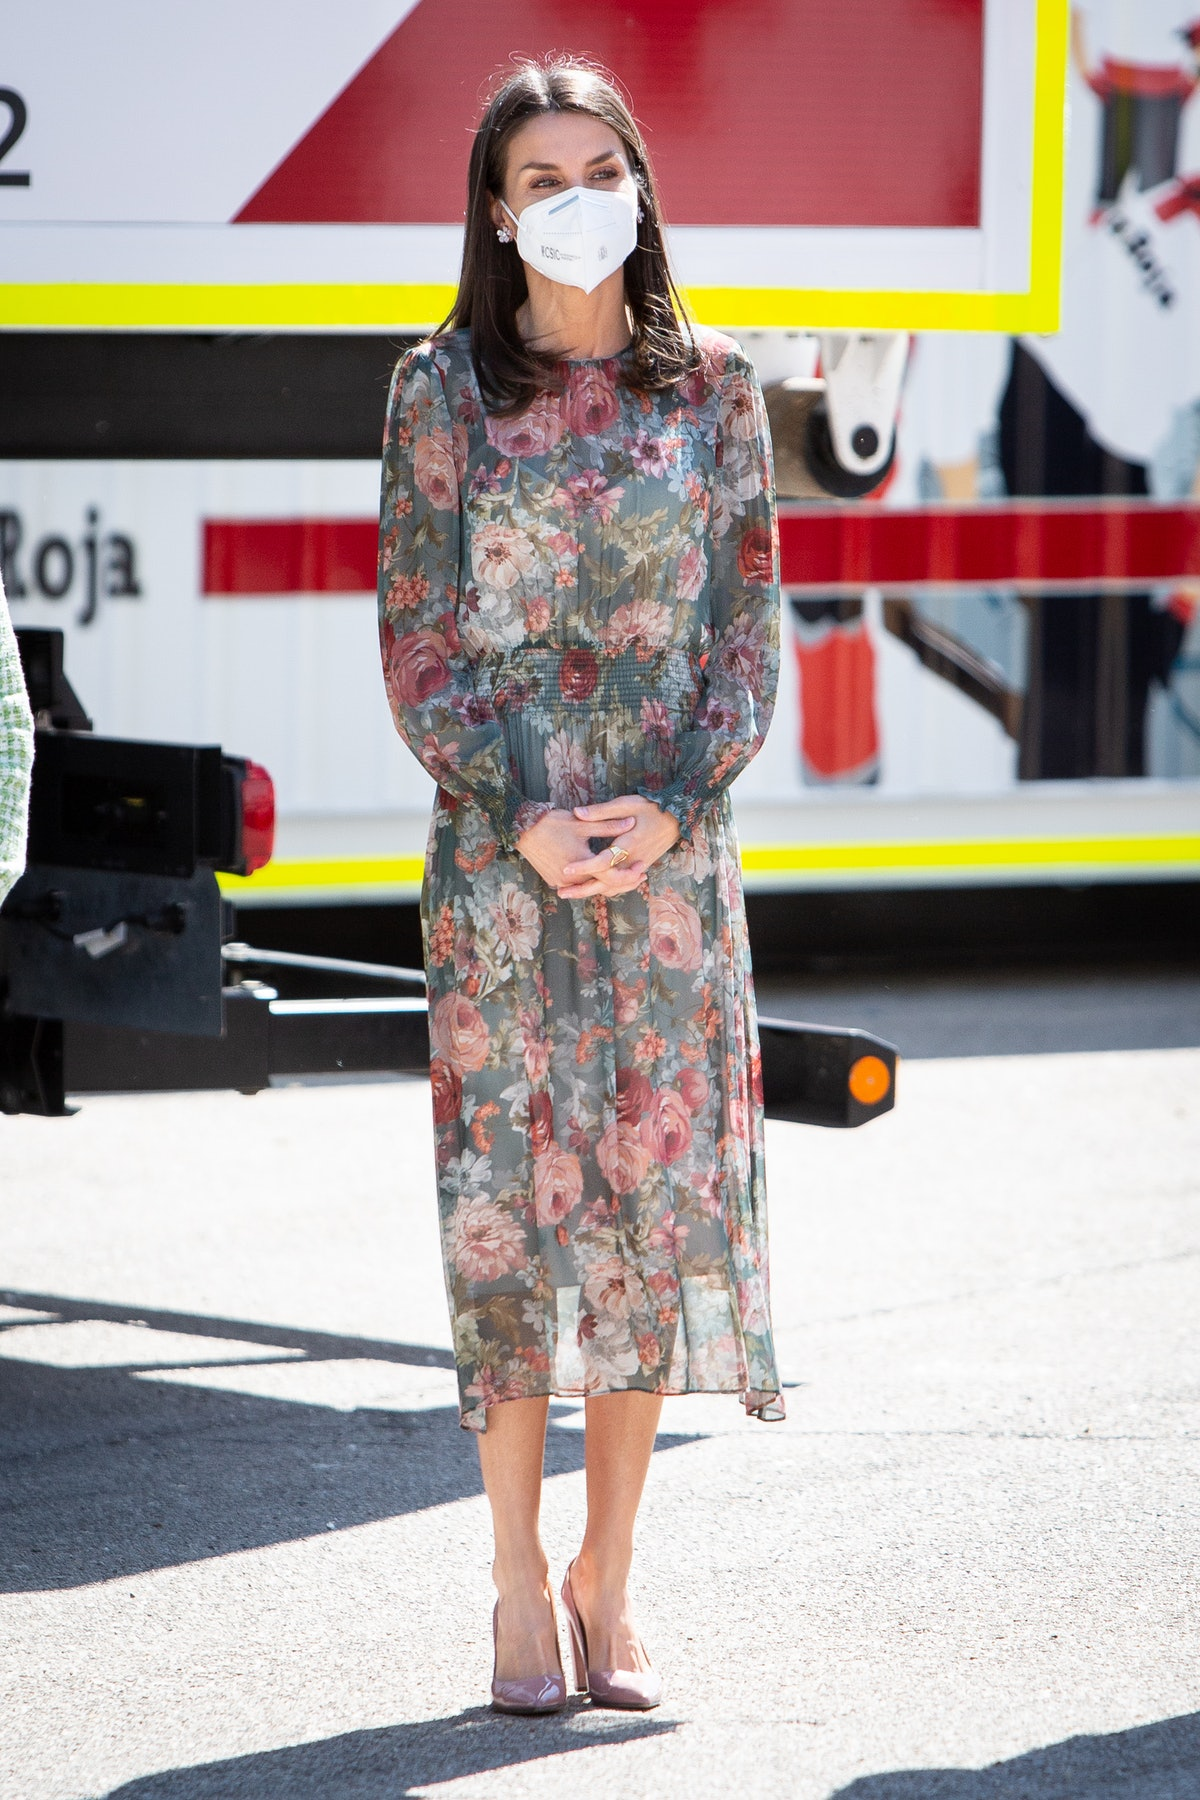 Queen Letizia of Spain attends the Red Cross Fundraising Day on May 05, 2021 in Madrid, Spain.